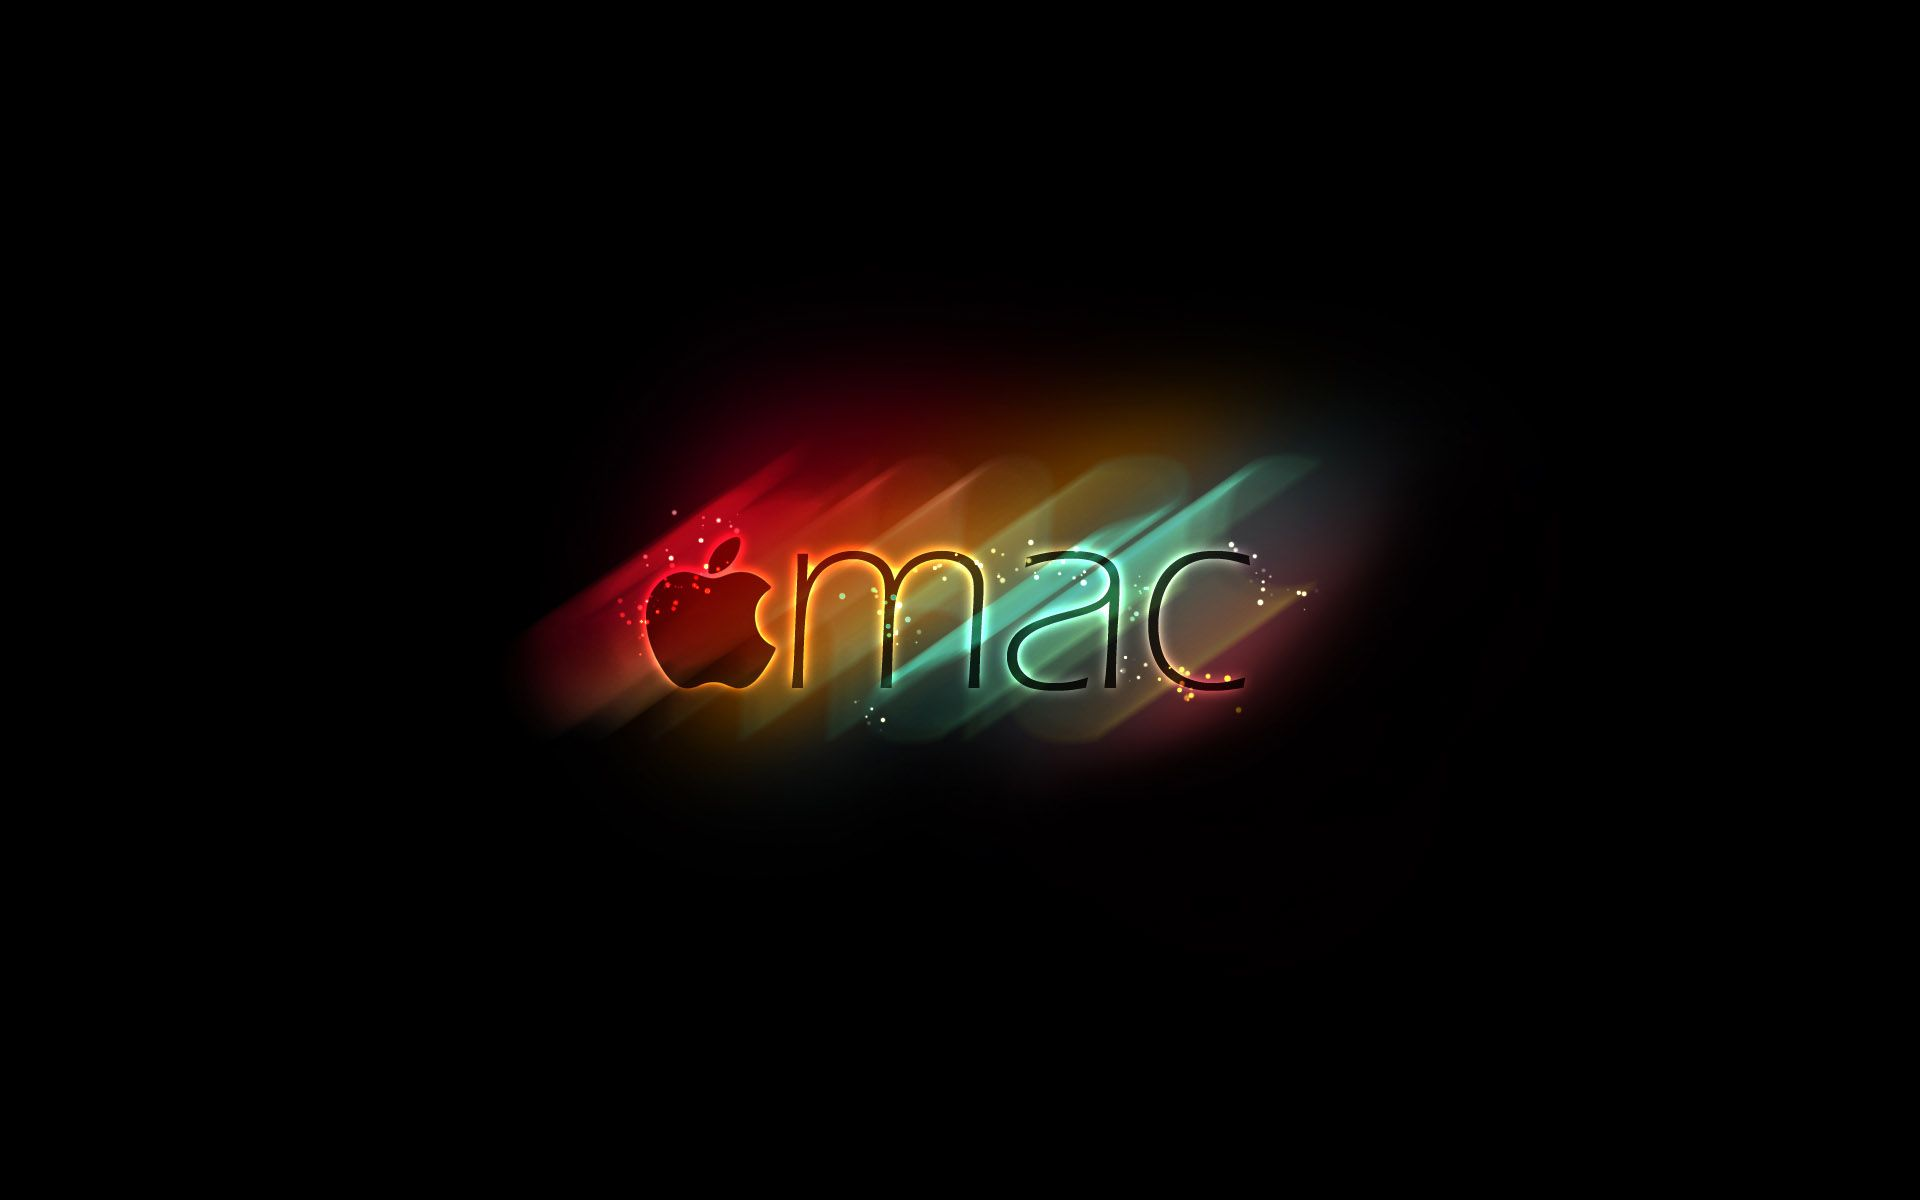 Apple Mac Colors Wallpaper Hd Imashon Com Brands